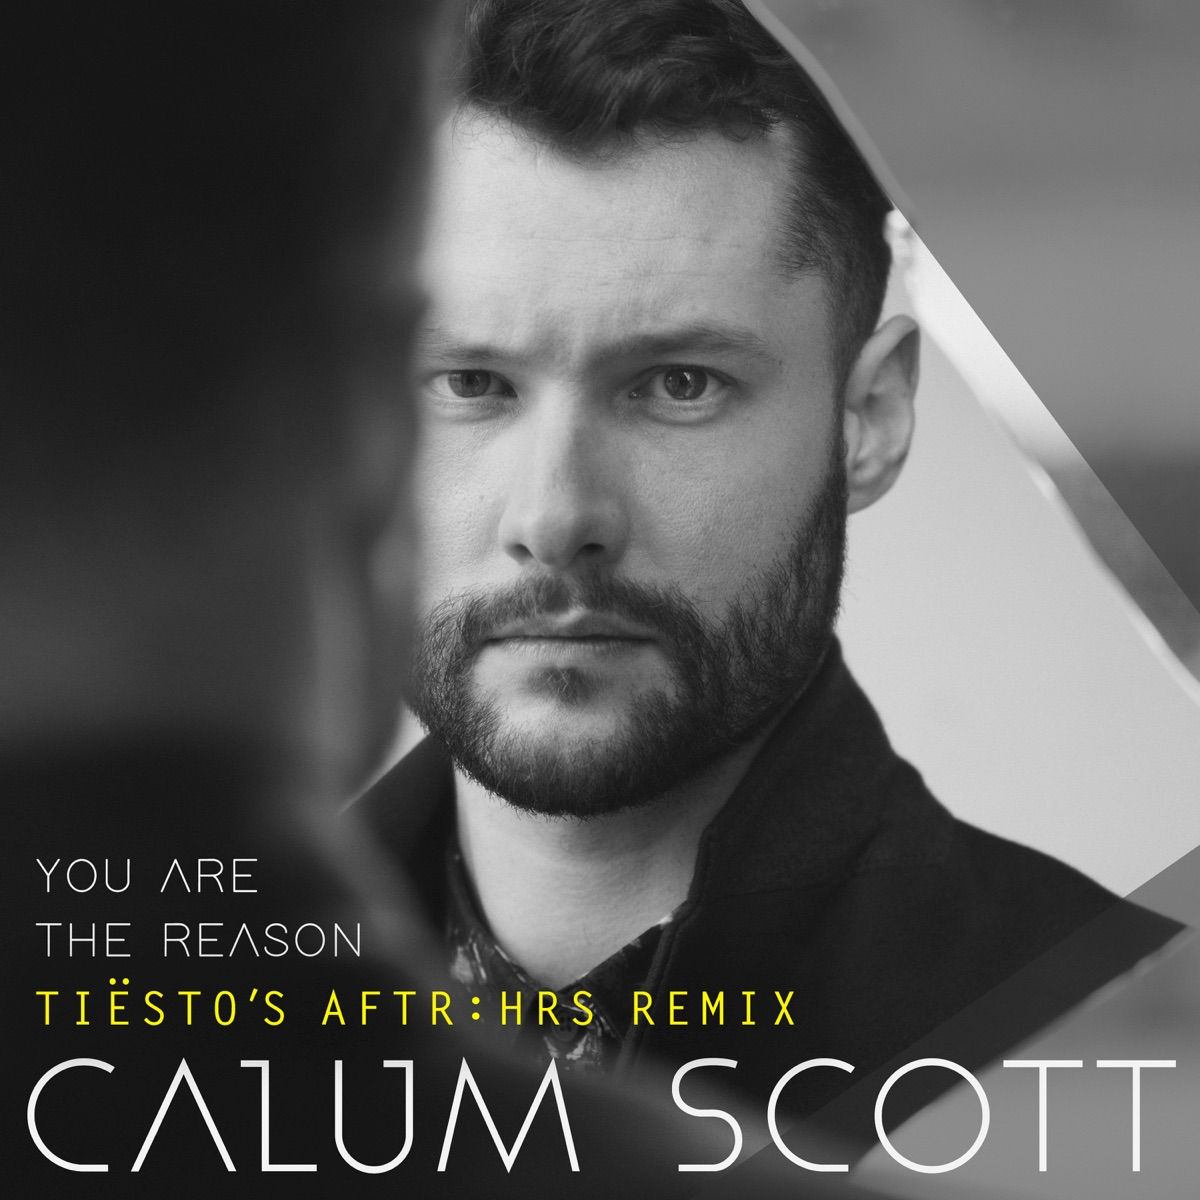 You Are the Reason Tiëstos AFTRHRS Remix - Single Calum Scott CD cover